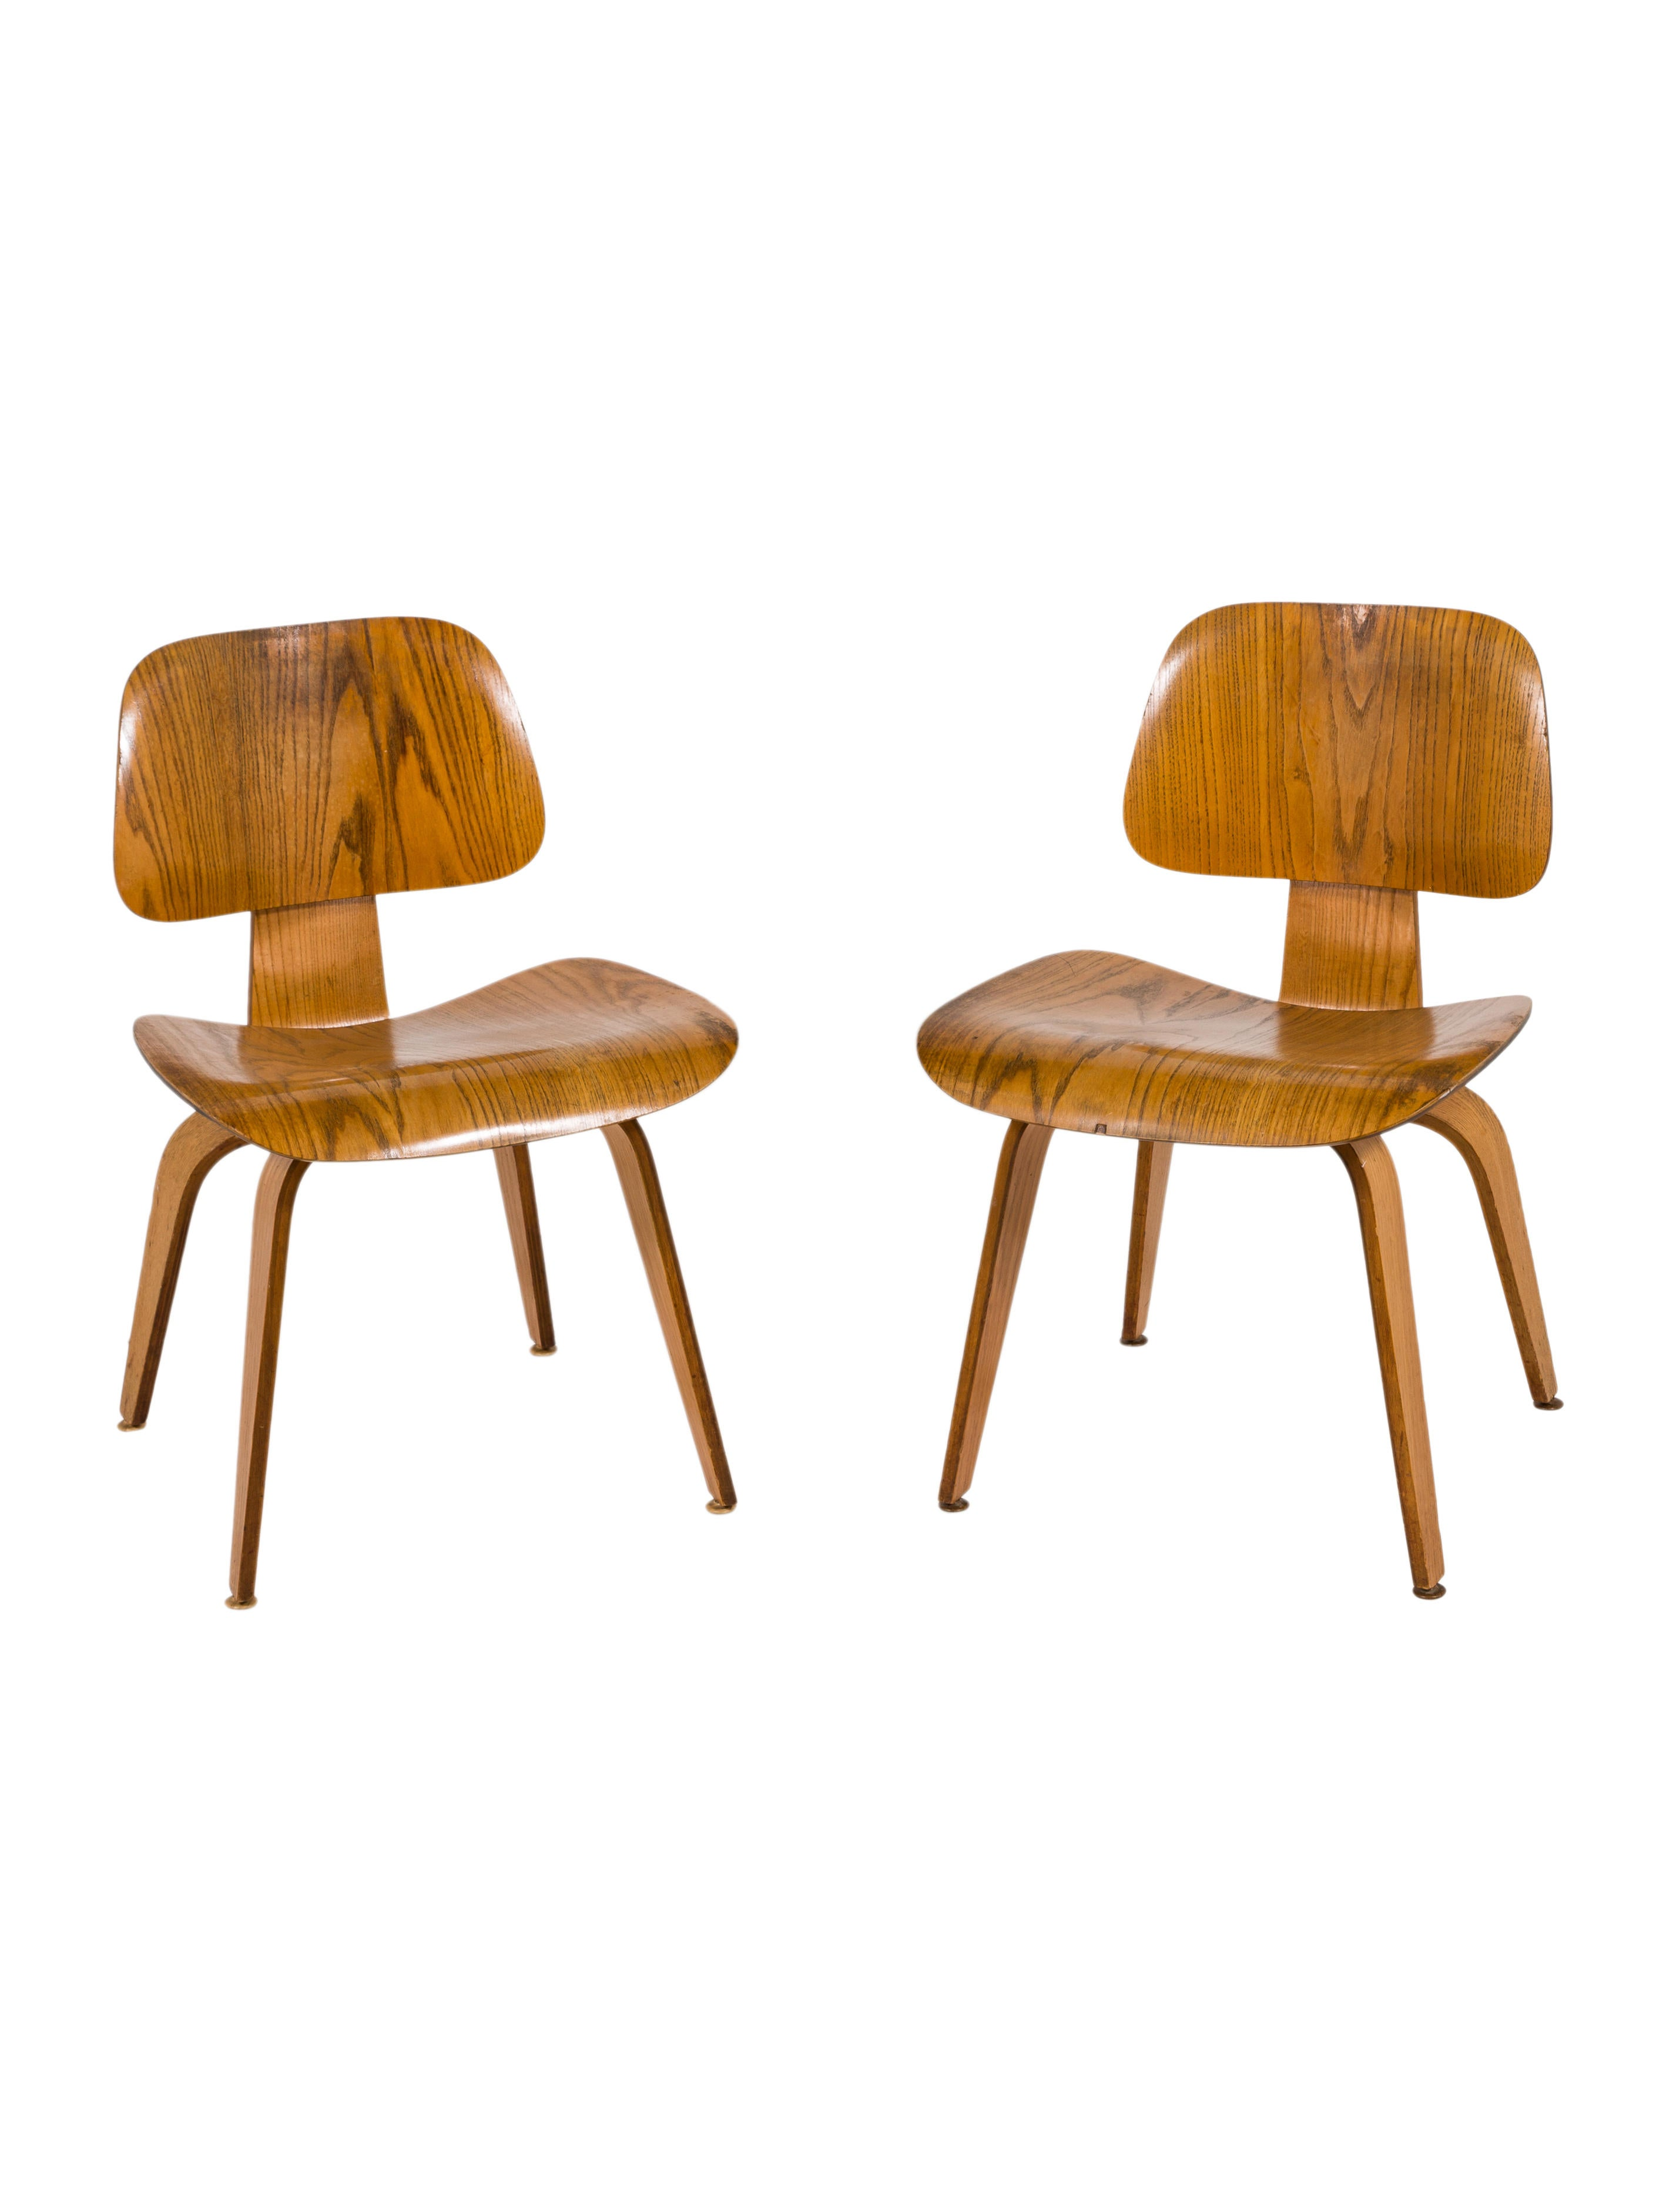 Pair of Vintage Eames DCW Chairs  sc 1 st  The RealReal & Herman Miller Pair of Vintage Eames DCW Chairs - Furniture ...